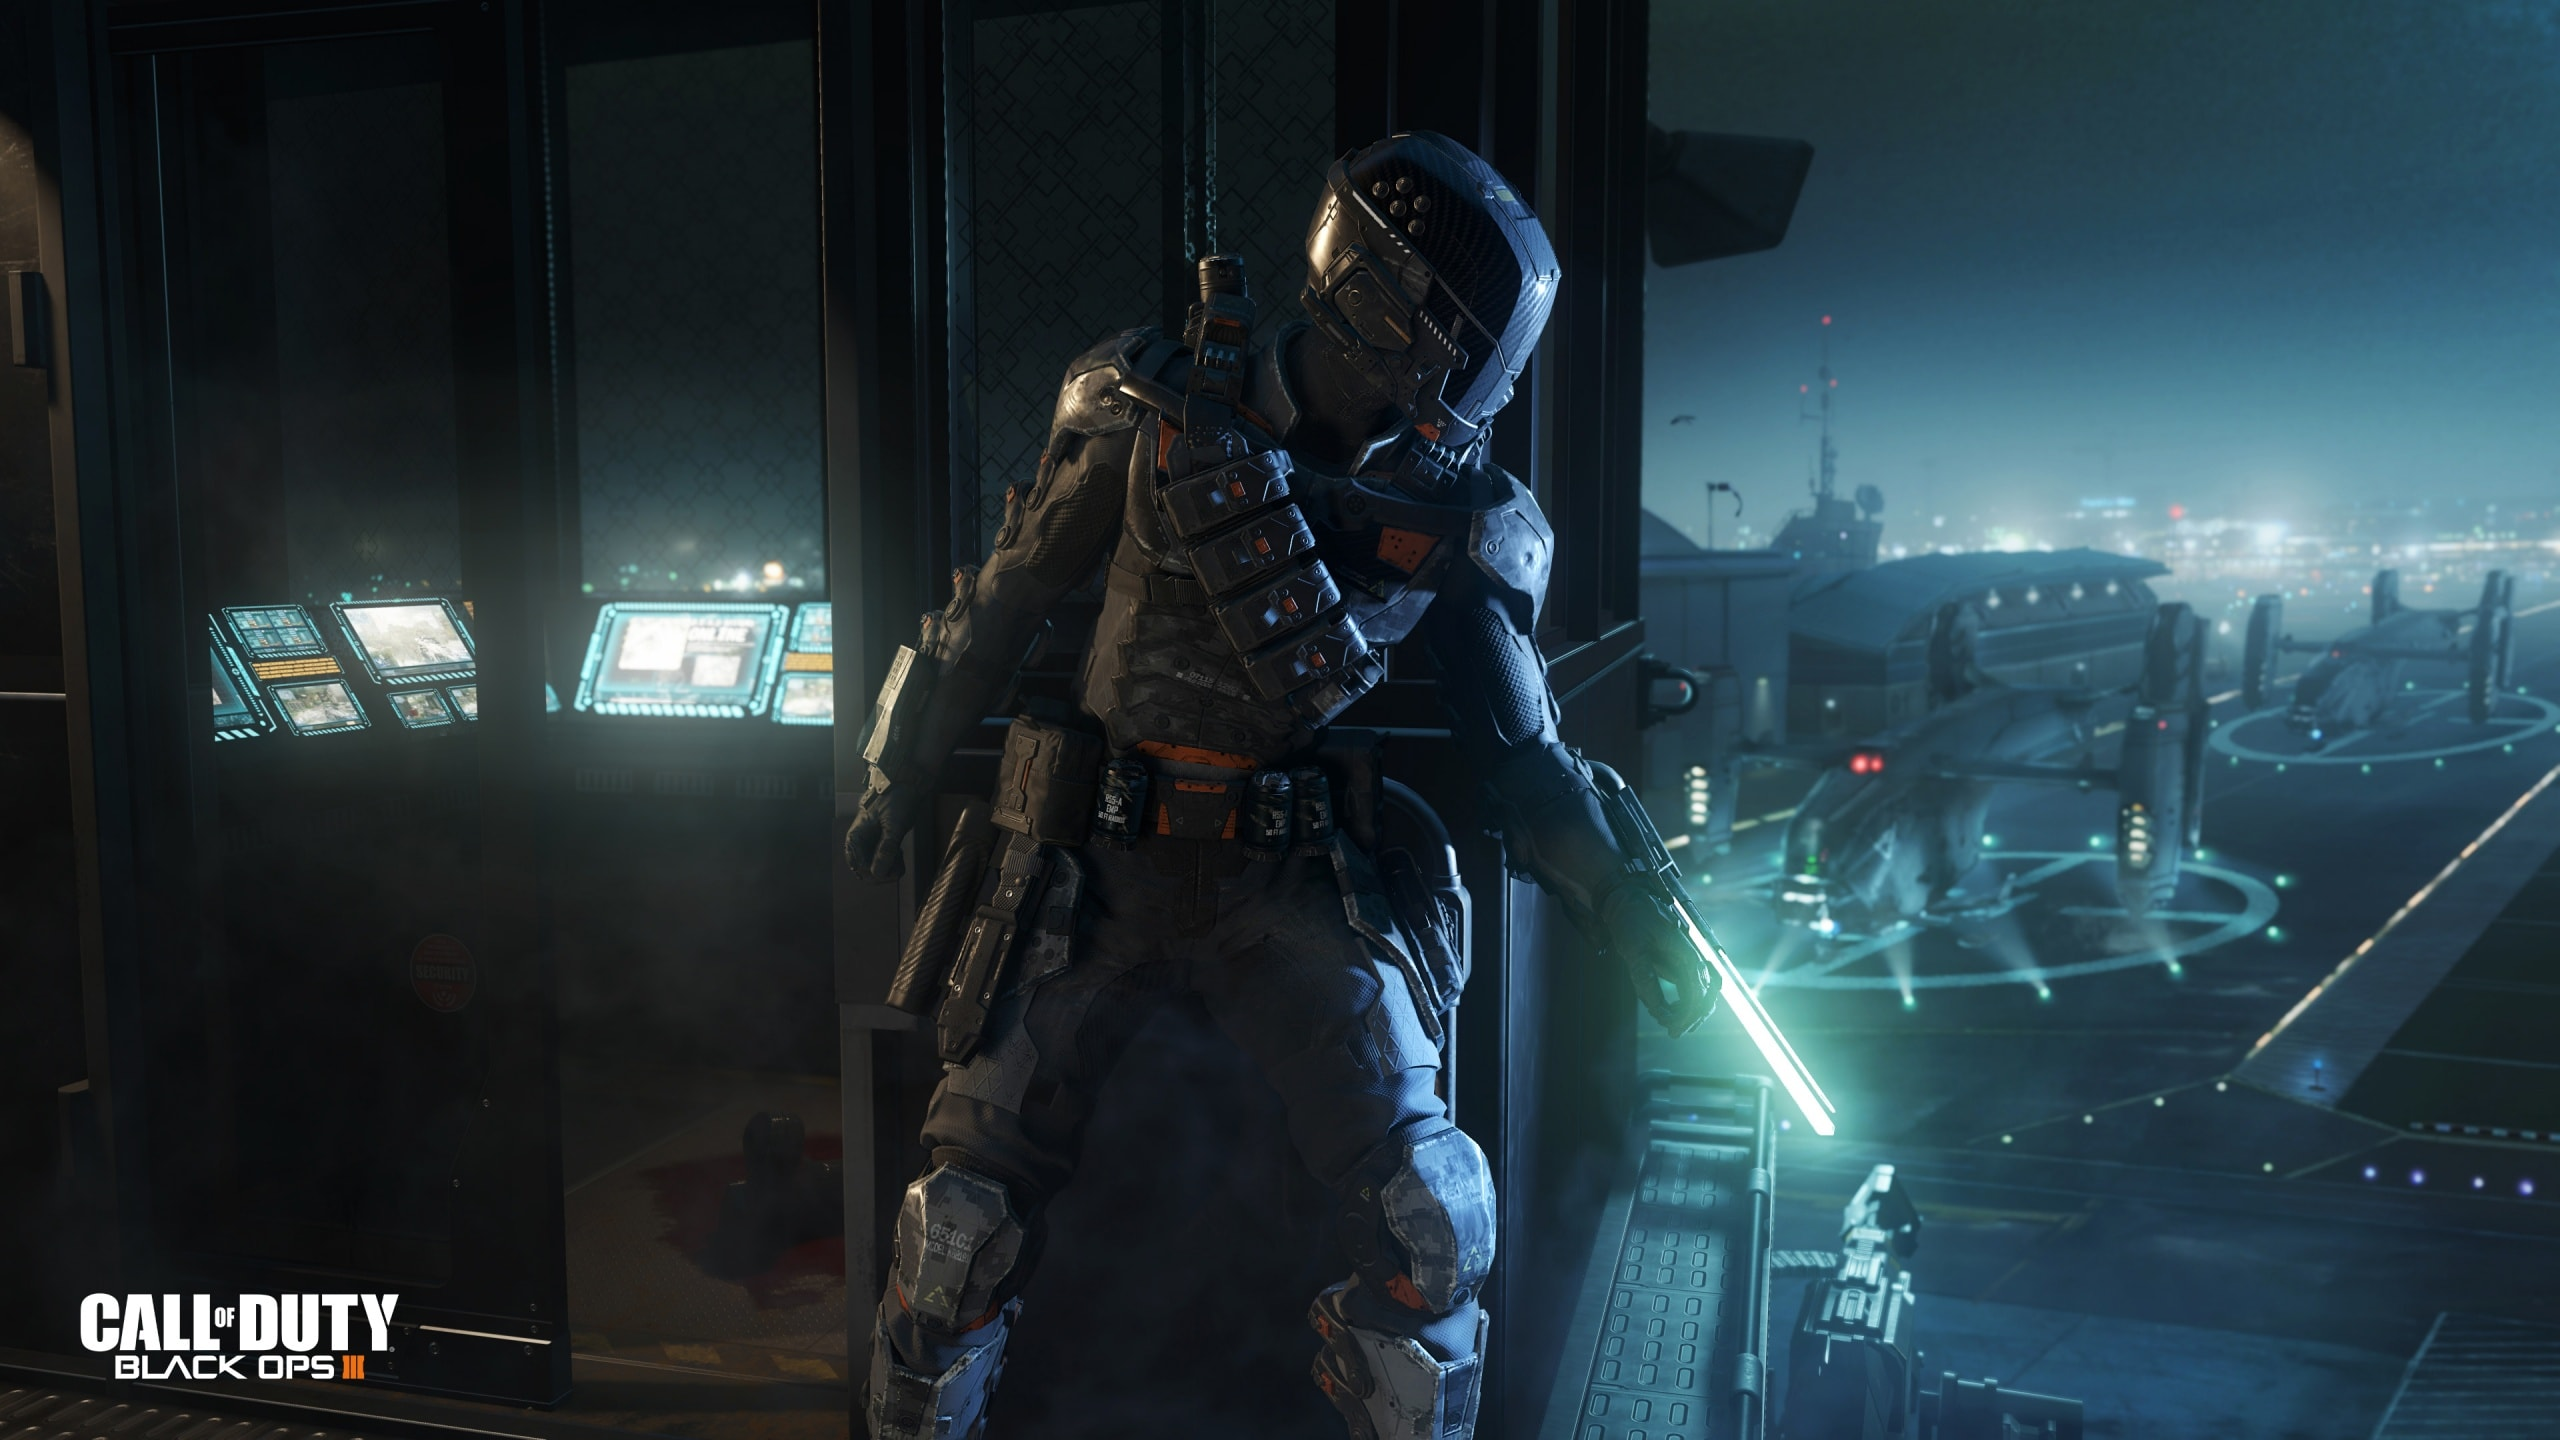 Call of Duty: Black Ops 3 HD pics